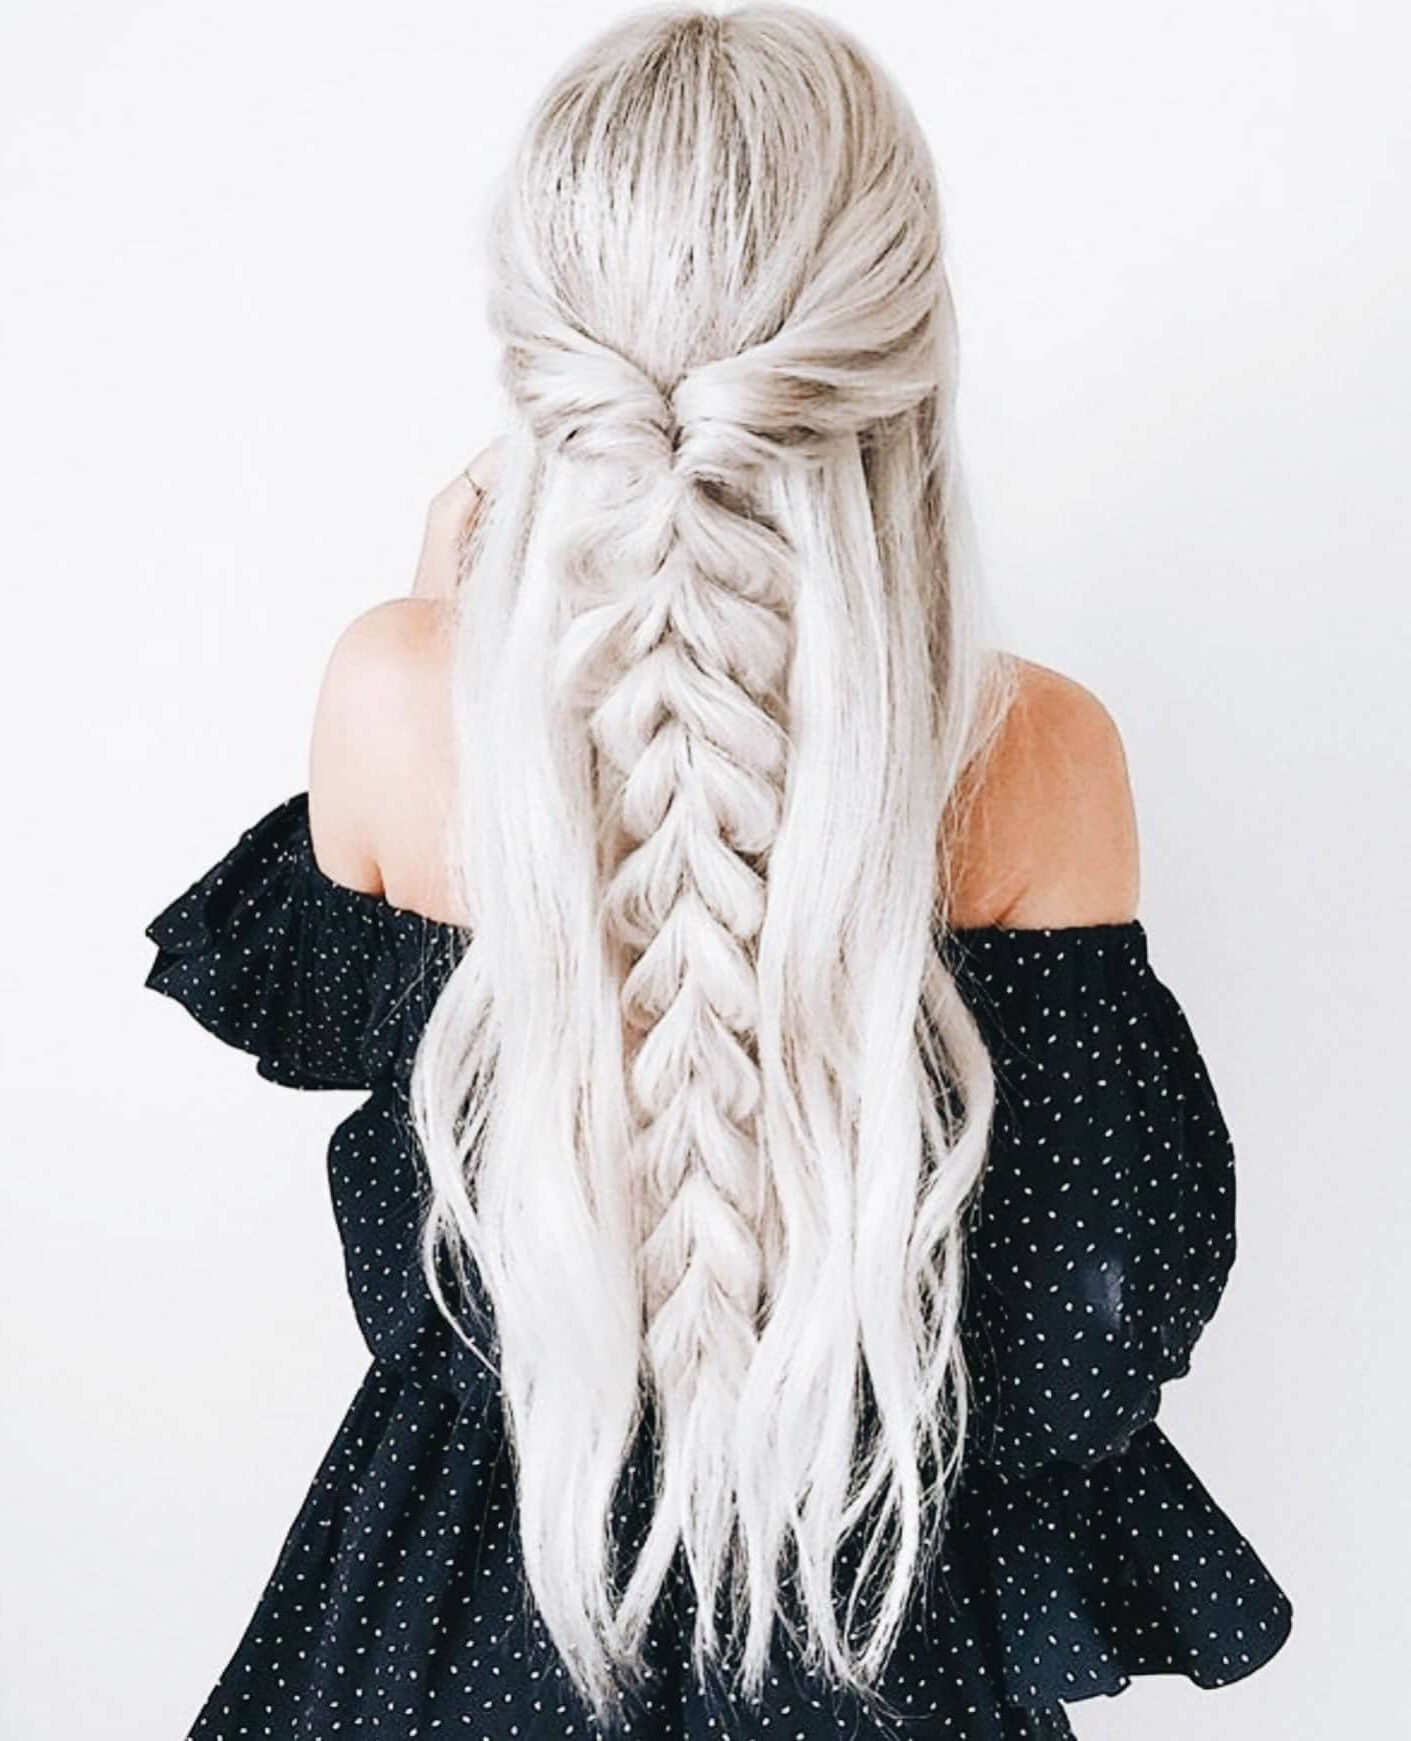 50 Unforgettable Ash Blonde Hairstyles To Inspire You With Regard To Famous Blonde Asymmetrical Pigtails Braid Hairstyles (View 16 of 20)